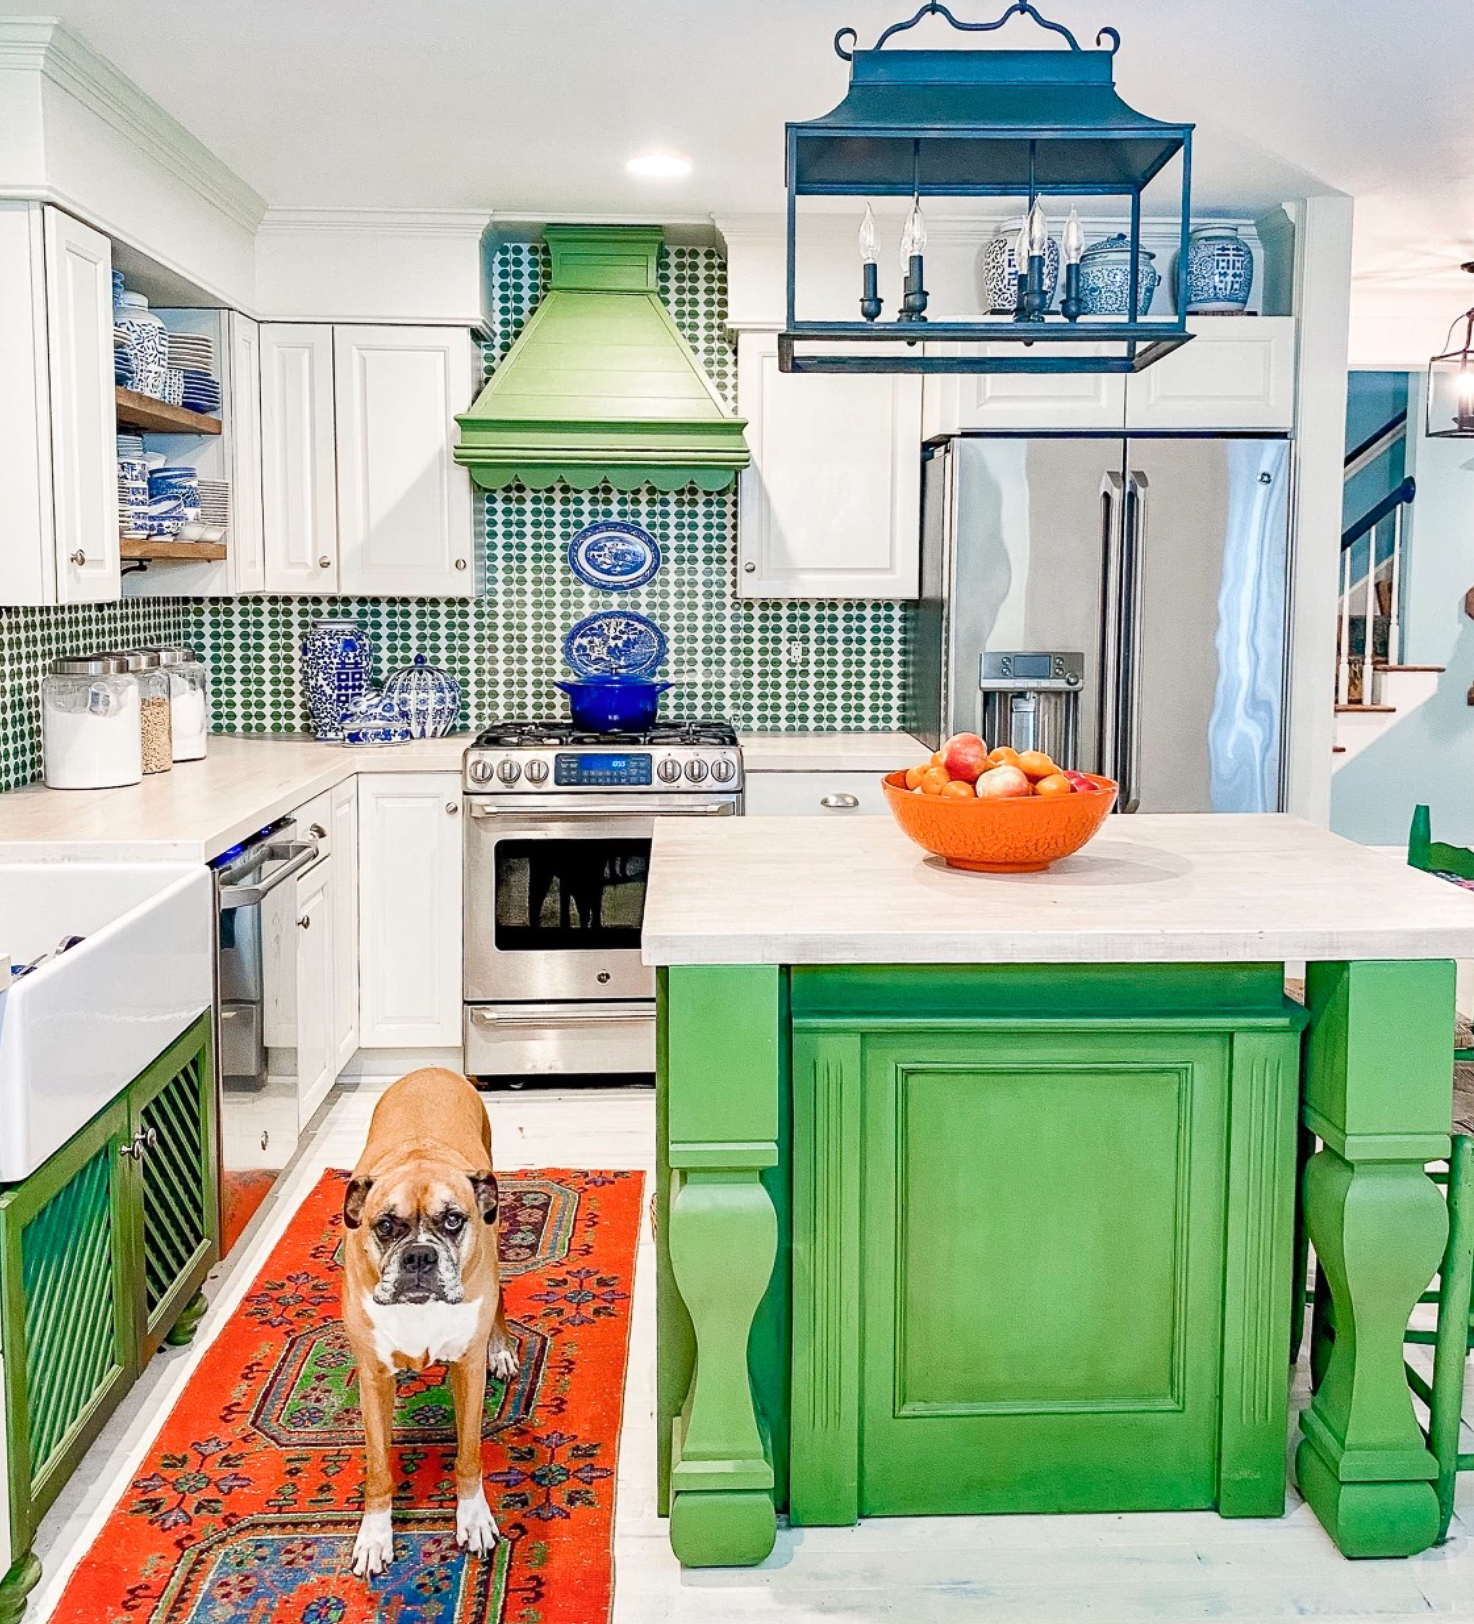 Colorful kitchen makeover - I love the Kelly green paint on the island